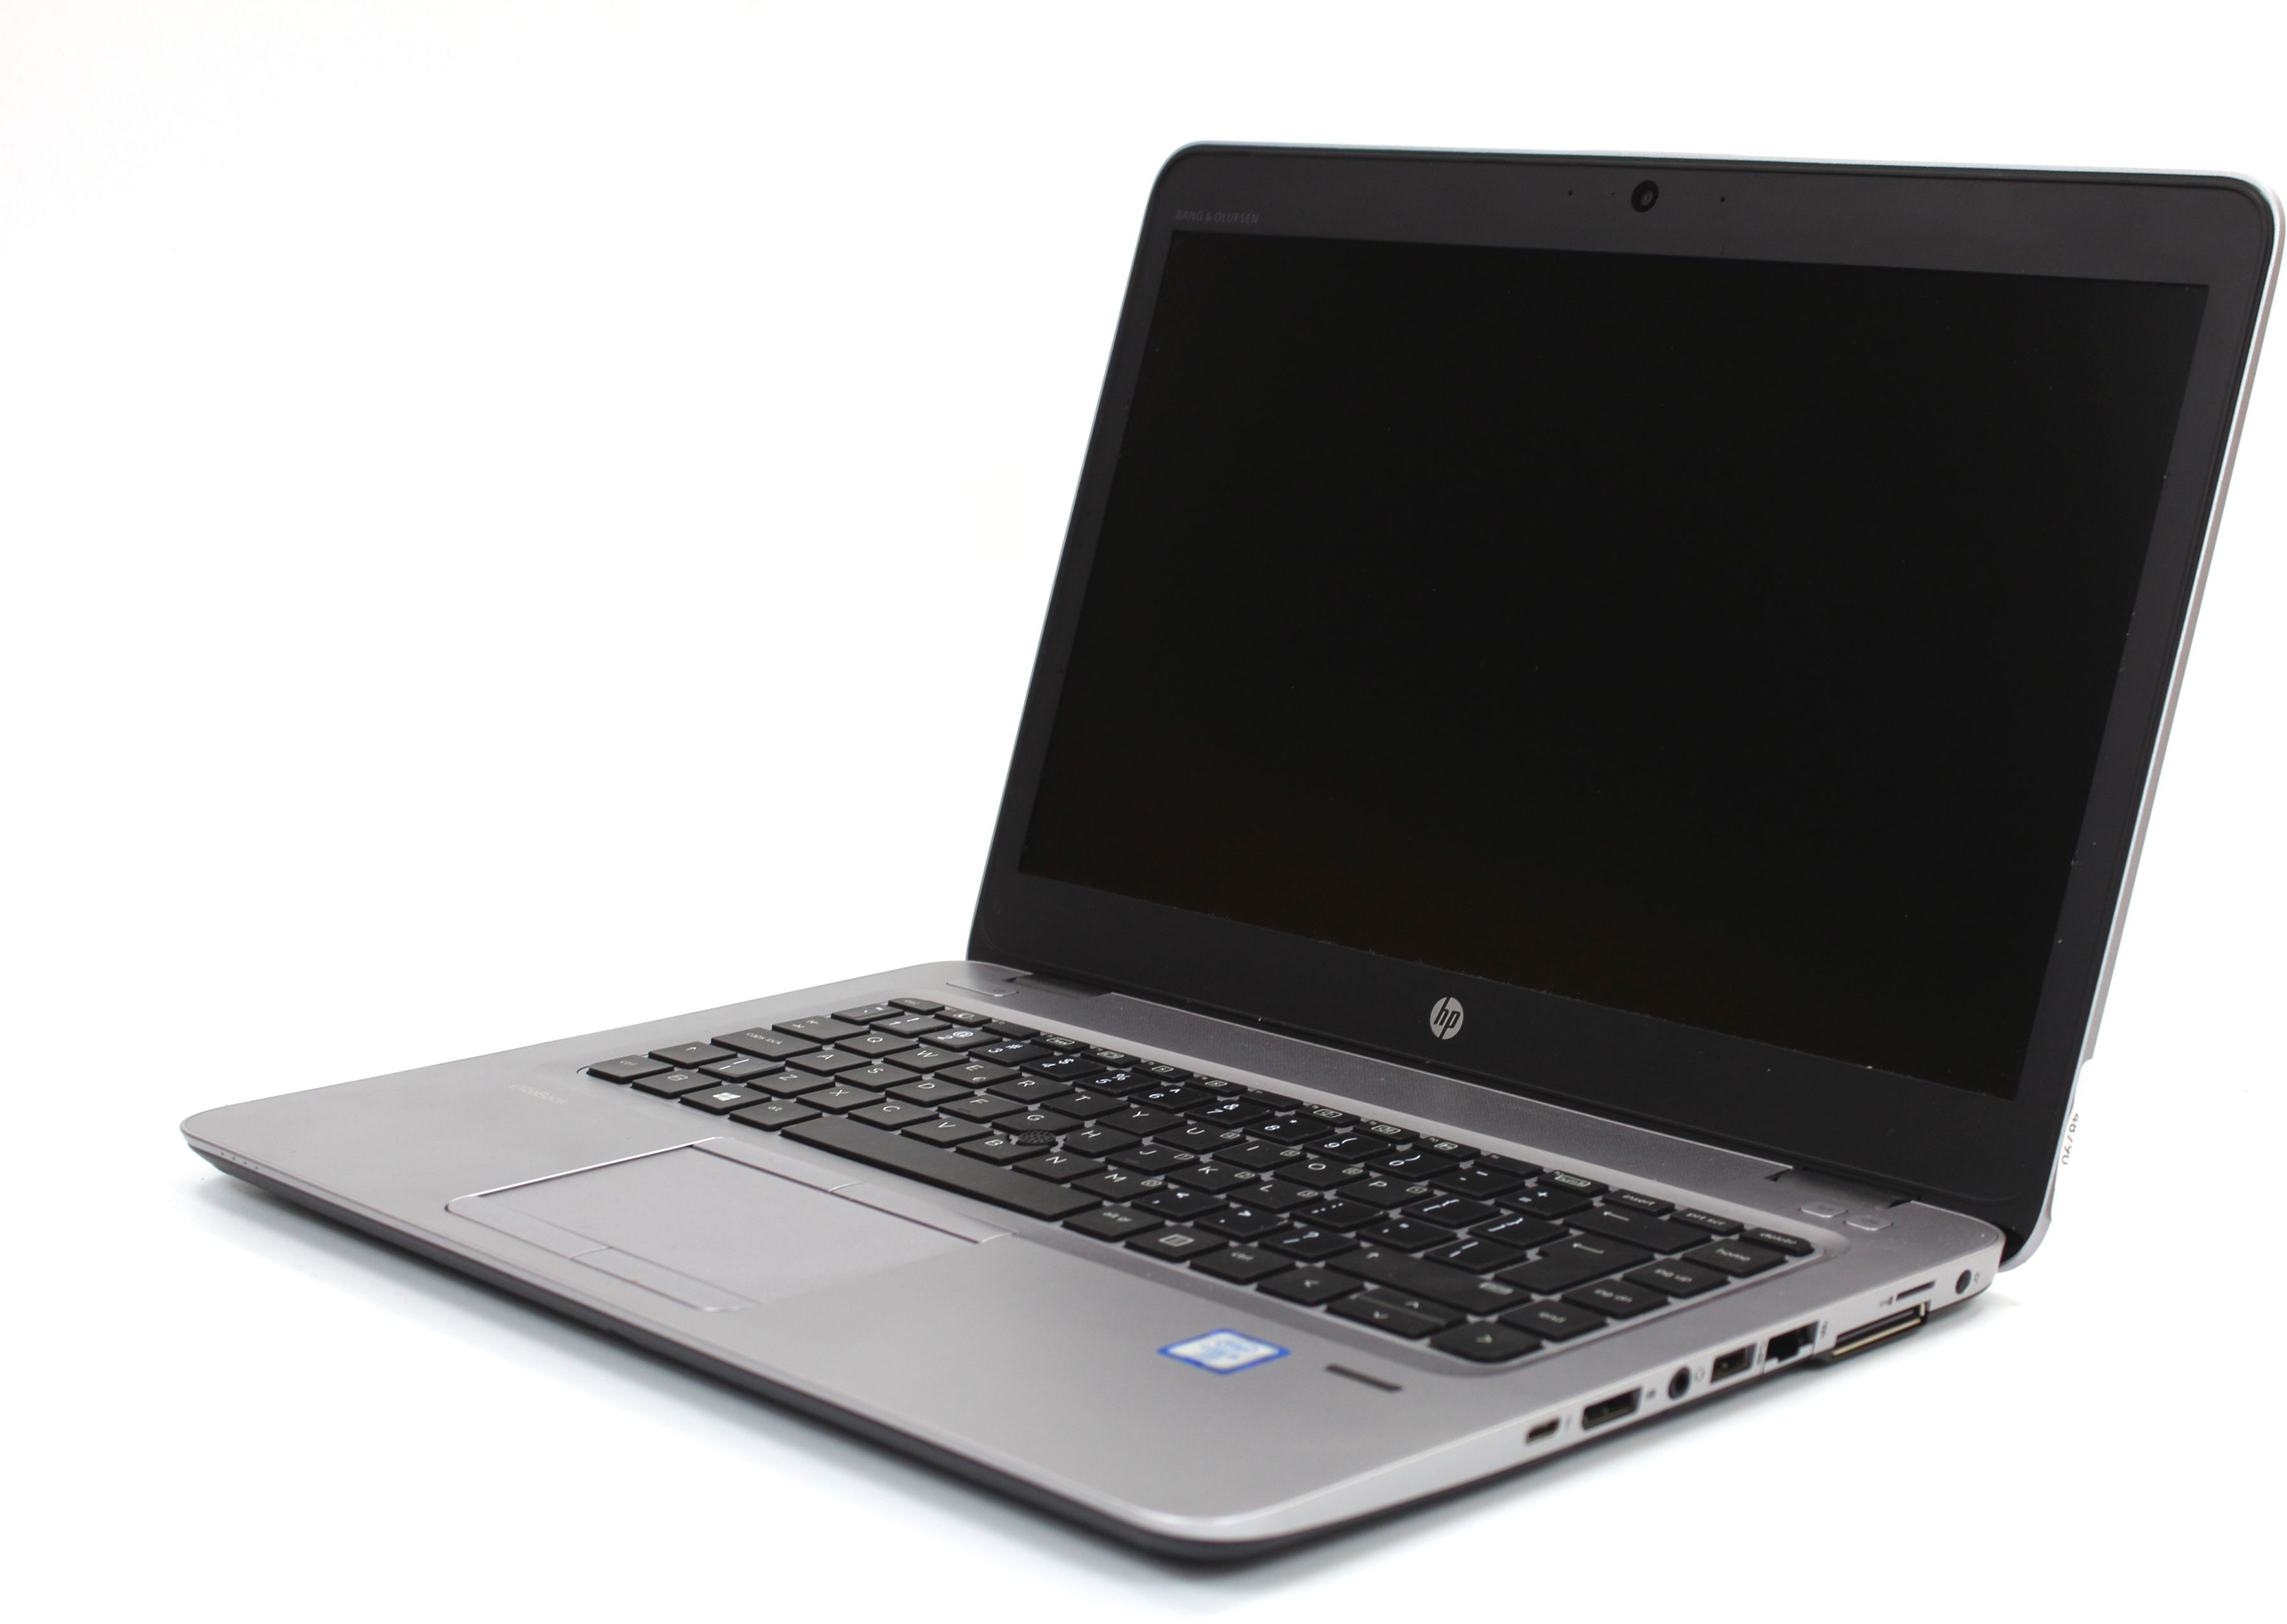 "Laptop HP EliteBook 840 G3 14.1"" Full HD i5-6300U 8GB 256GB SSD Kamera Windows 7/8/10 Pro"